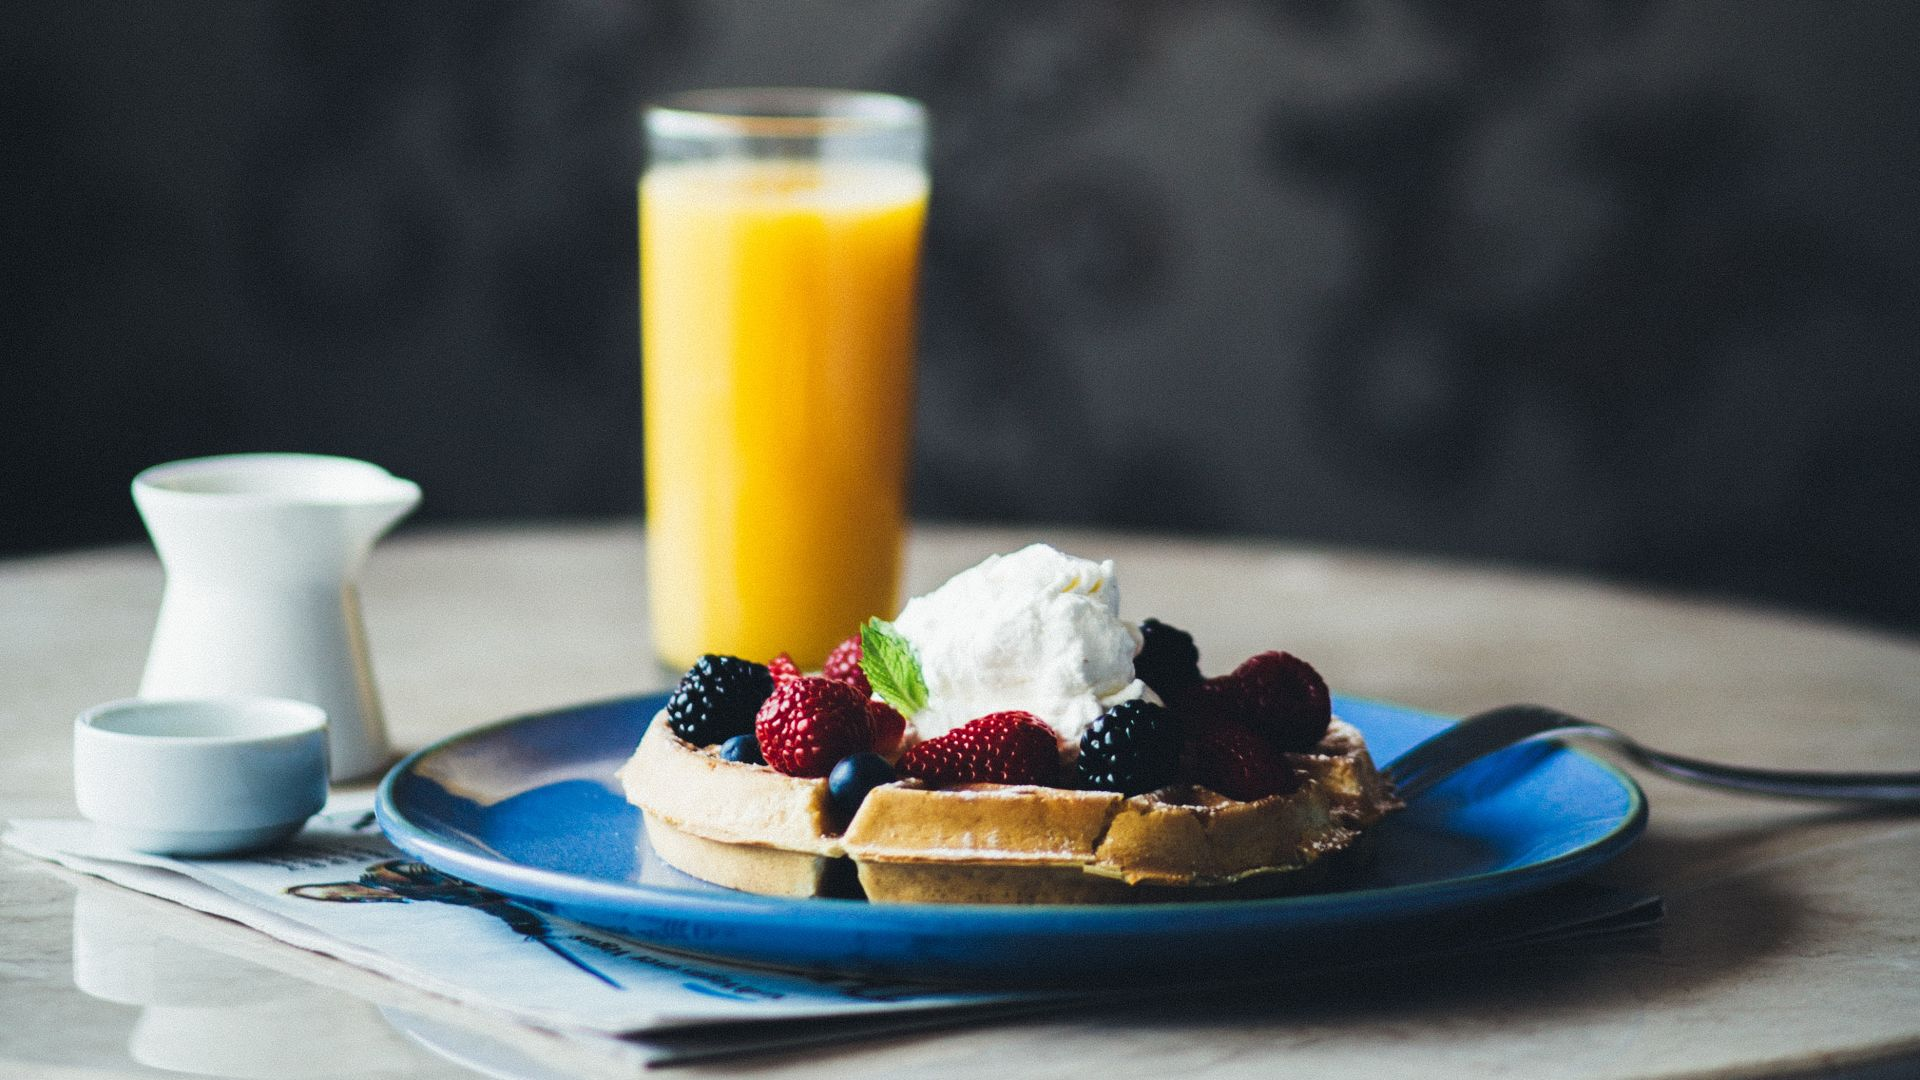   Bed & Breakfast in St. Louis   Enjoy a savory start to your day by booking Bed & Breakfast.   Book Now